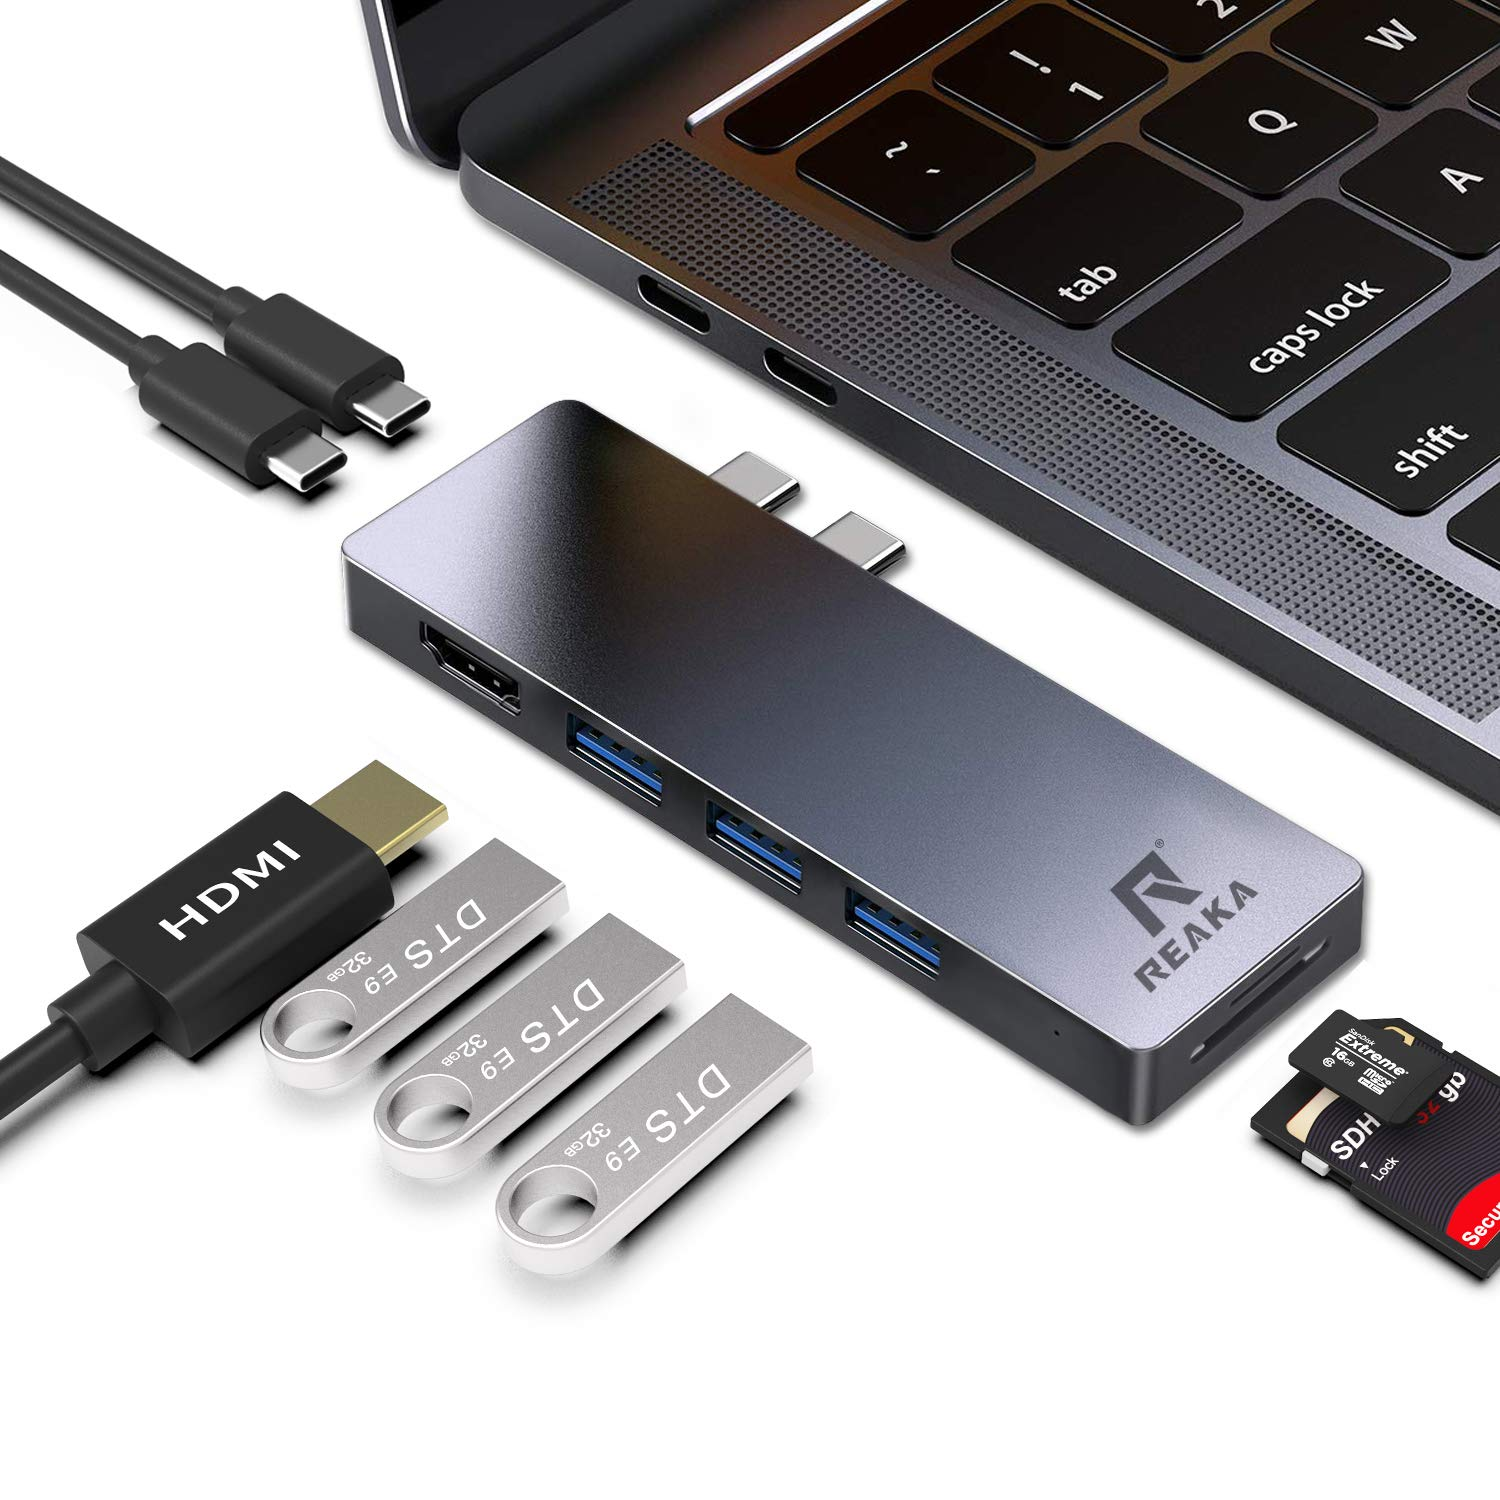 USB C Hub Adapter Dock for Apple MacBook Pro2019.2018,2017 13/15inch,MacBook Air2018 13 inch Dongle,HDMI 4K,100W Power Delivery,40Gbps Thunderbolt 3 5K@60Hz,2 USB 3.0, SD/TF Card Reader,USB C Port by RREAKA